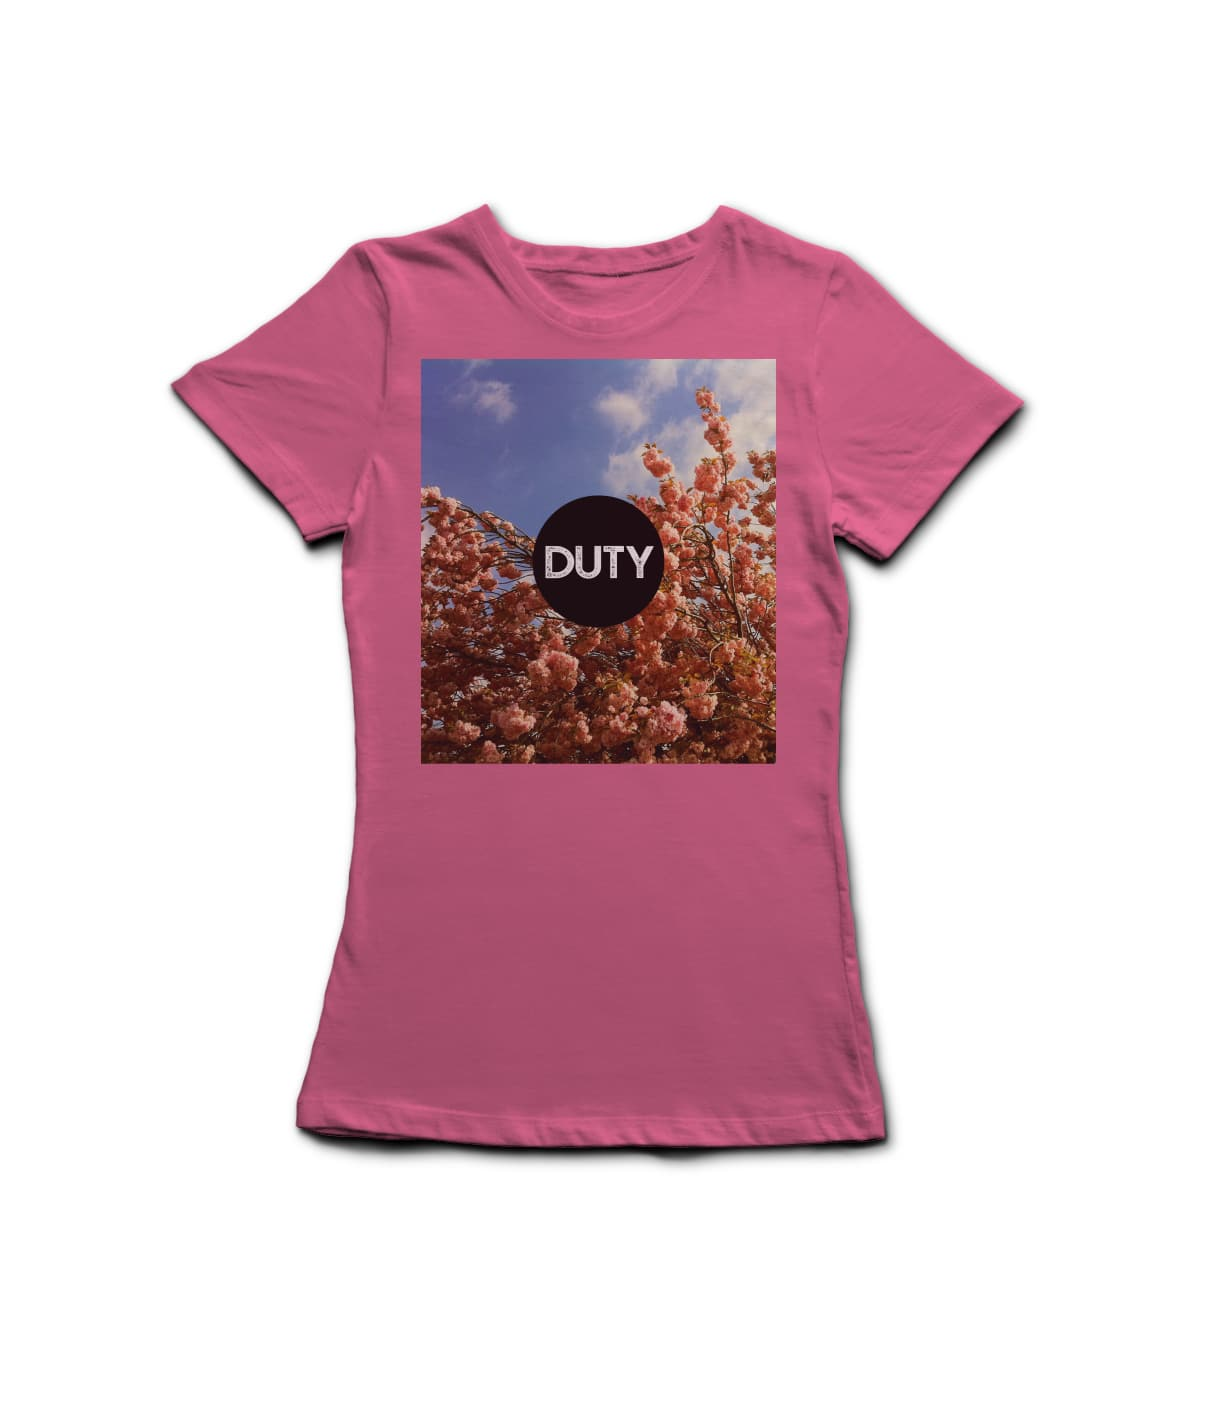 L t shirt pink oxzwvo